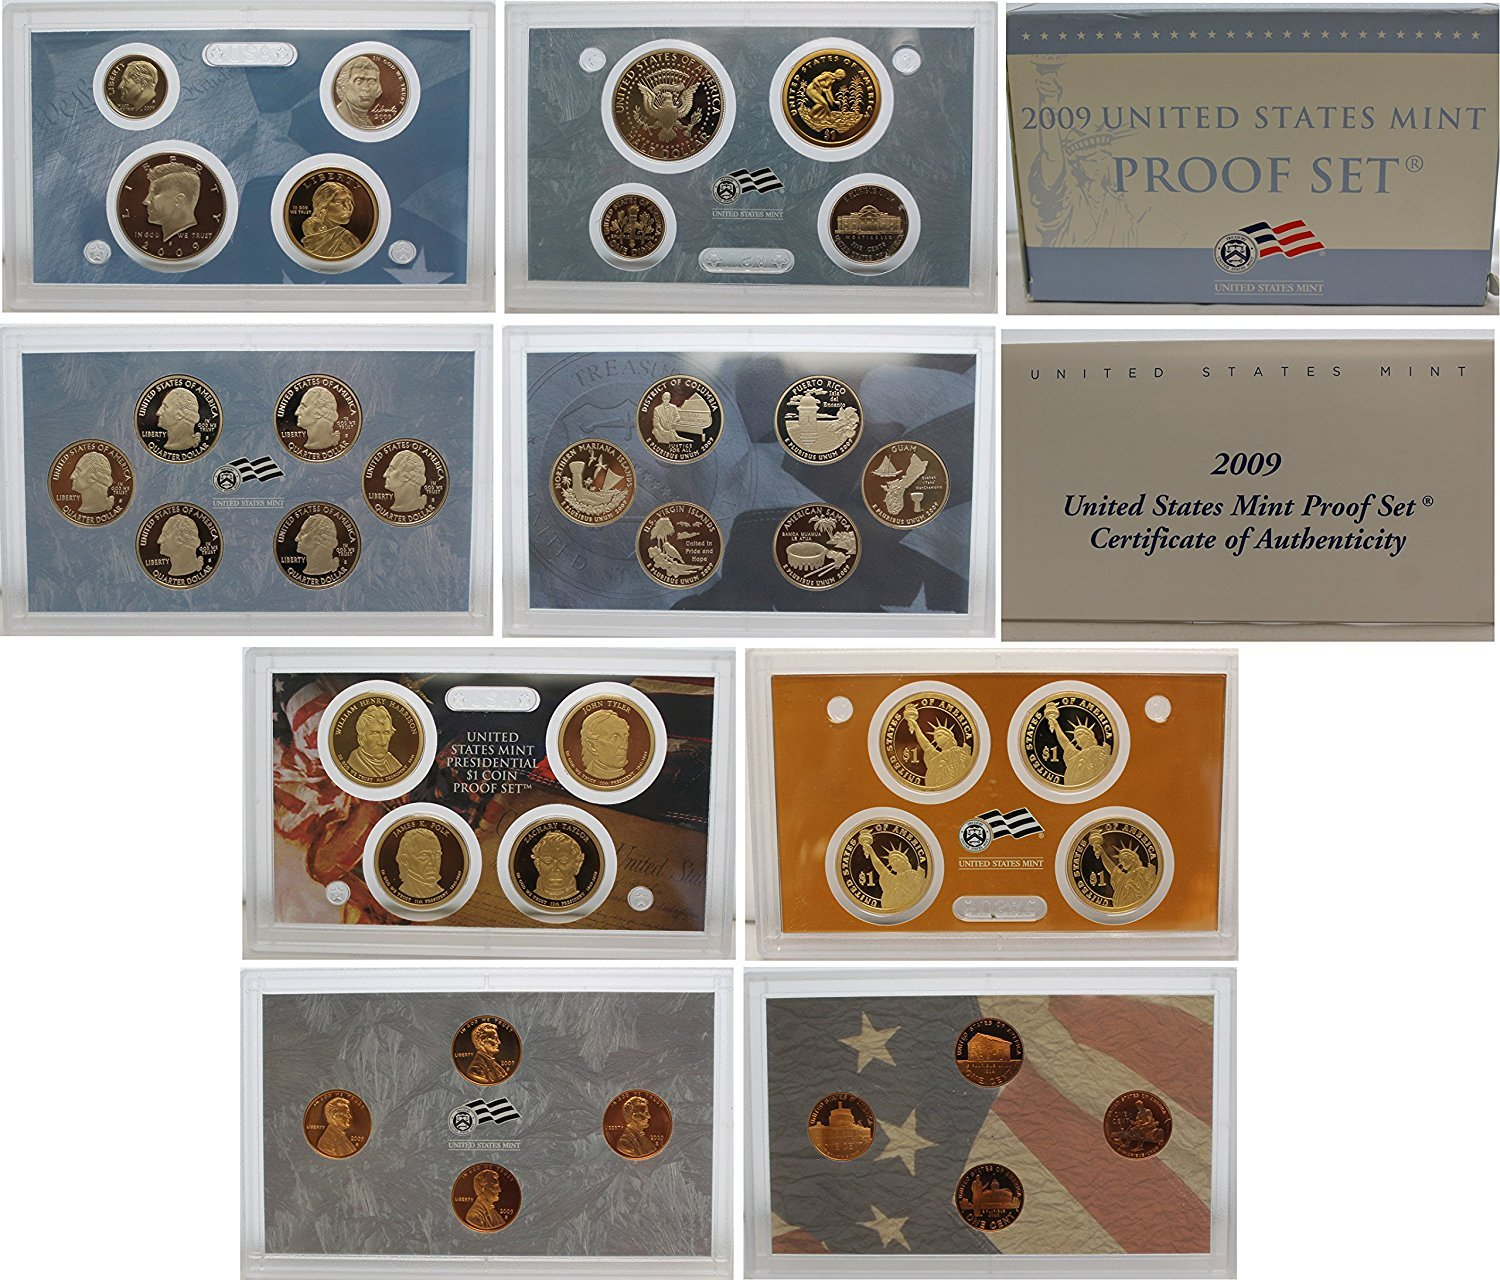 2009 S U.S. Mint Proof Set - 18 Coins - OGP Superb Gem Uncirculated